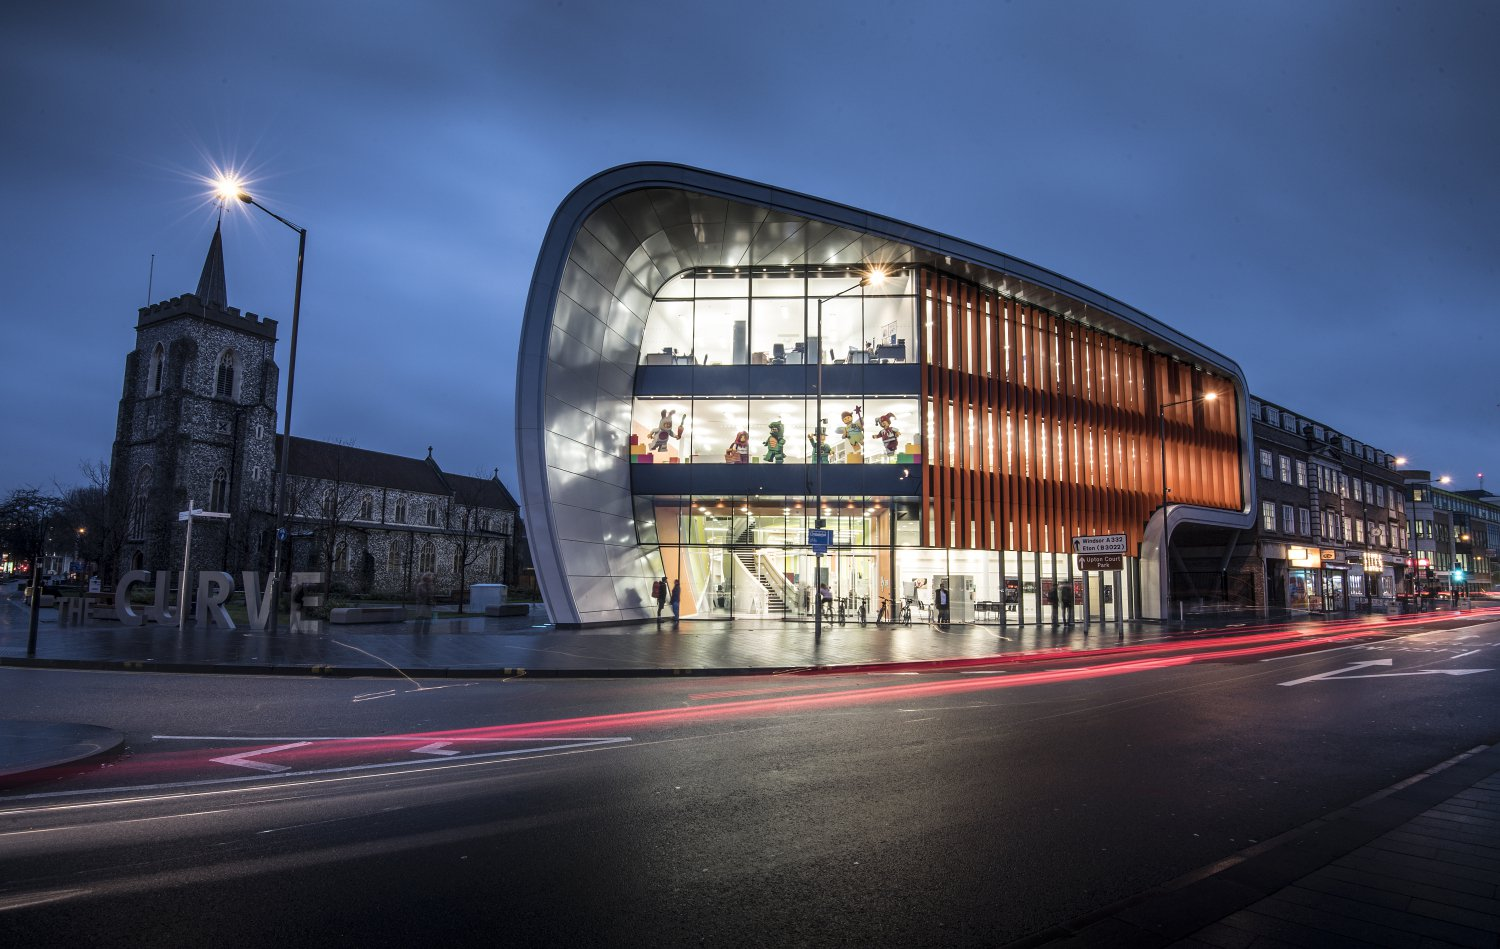 Image of the exterior of The Curve, the cinema in Slough